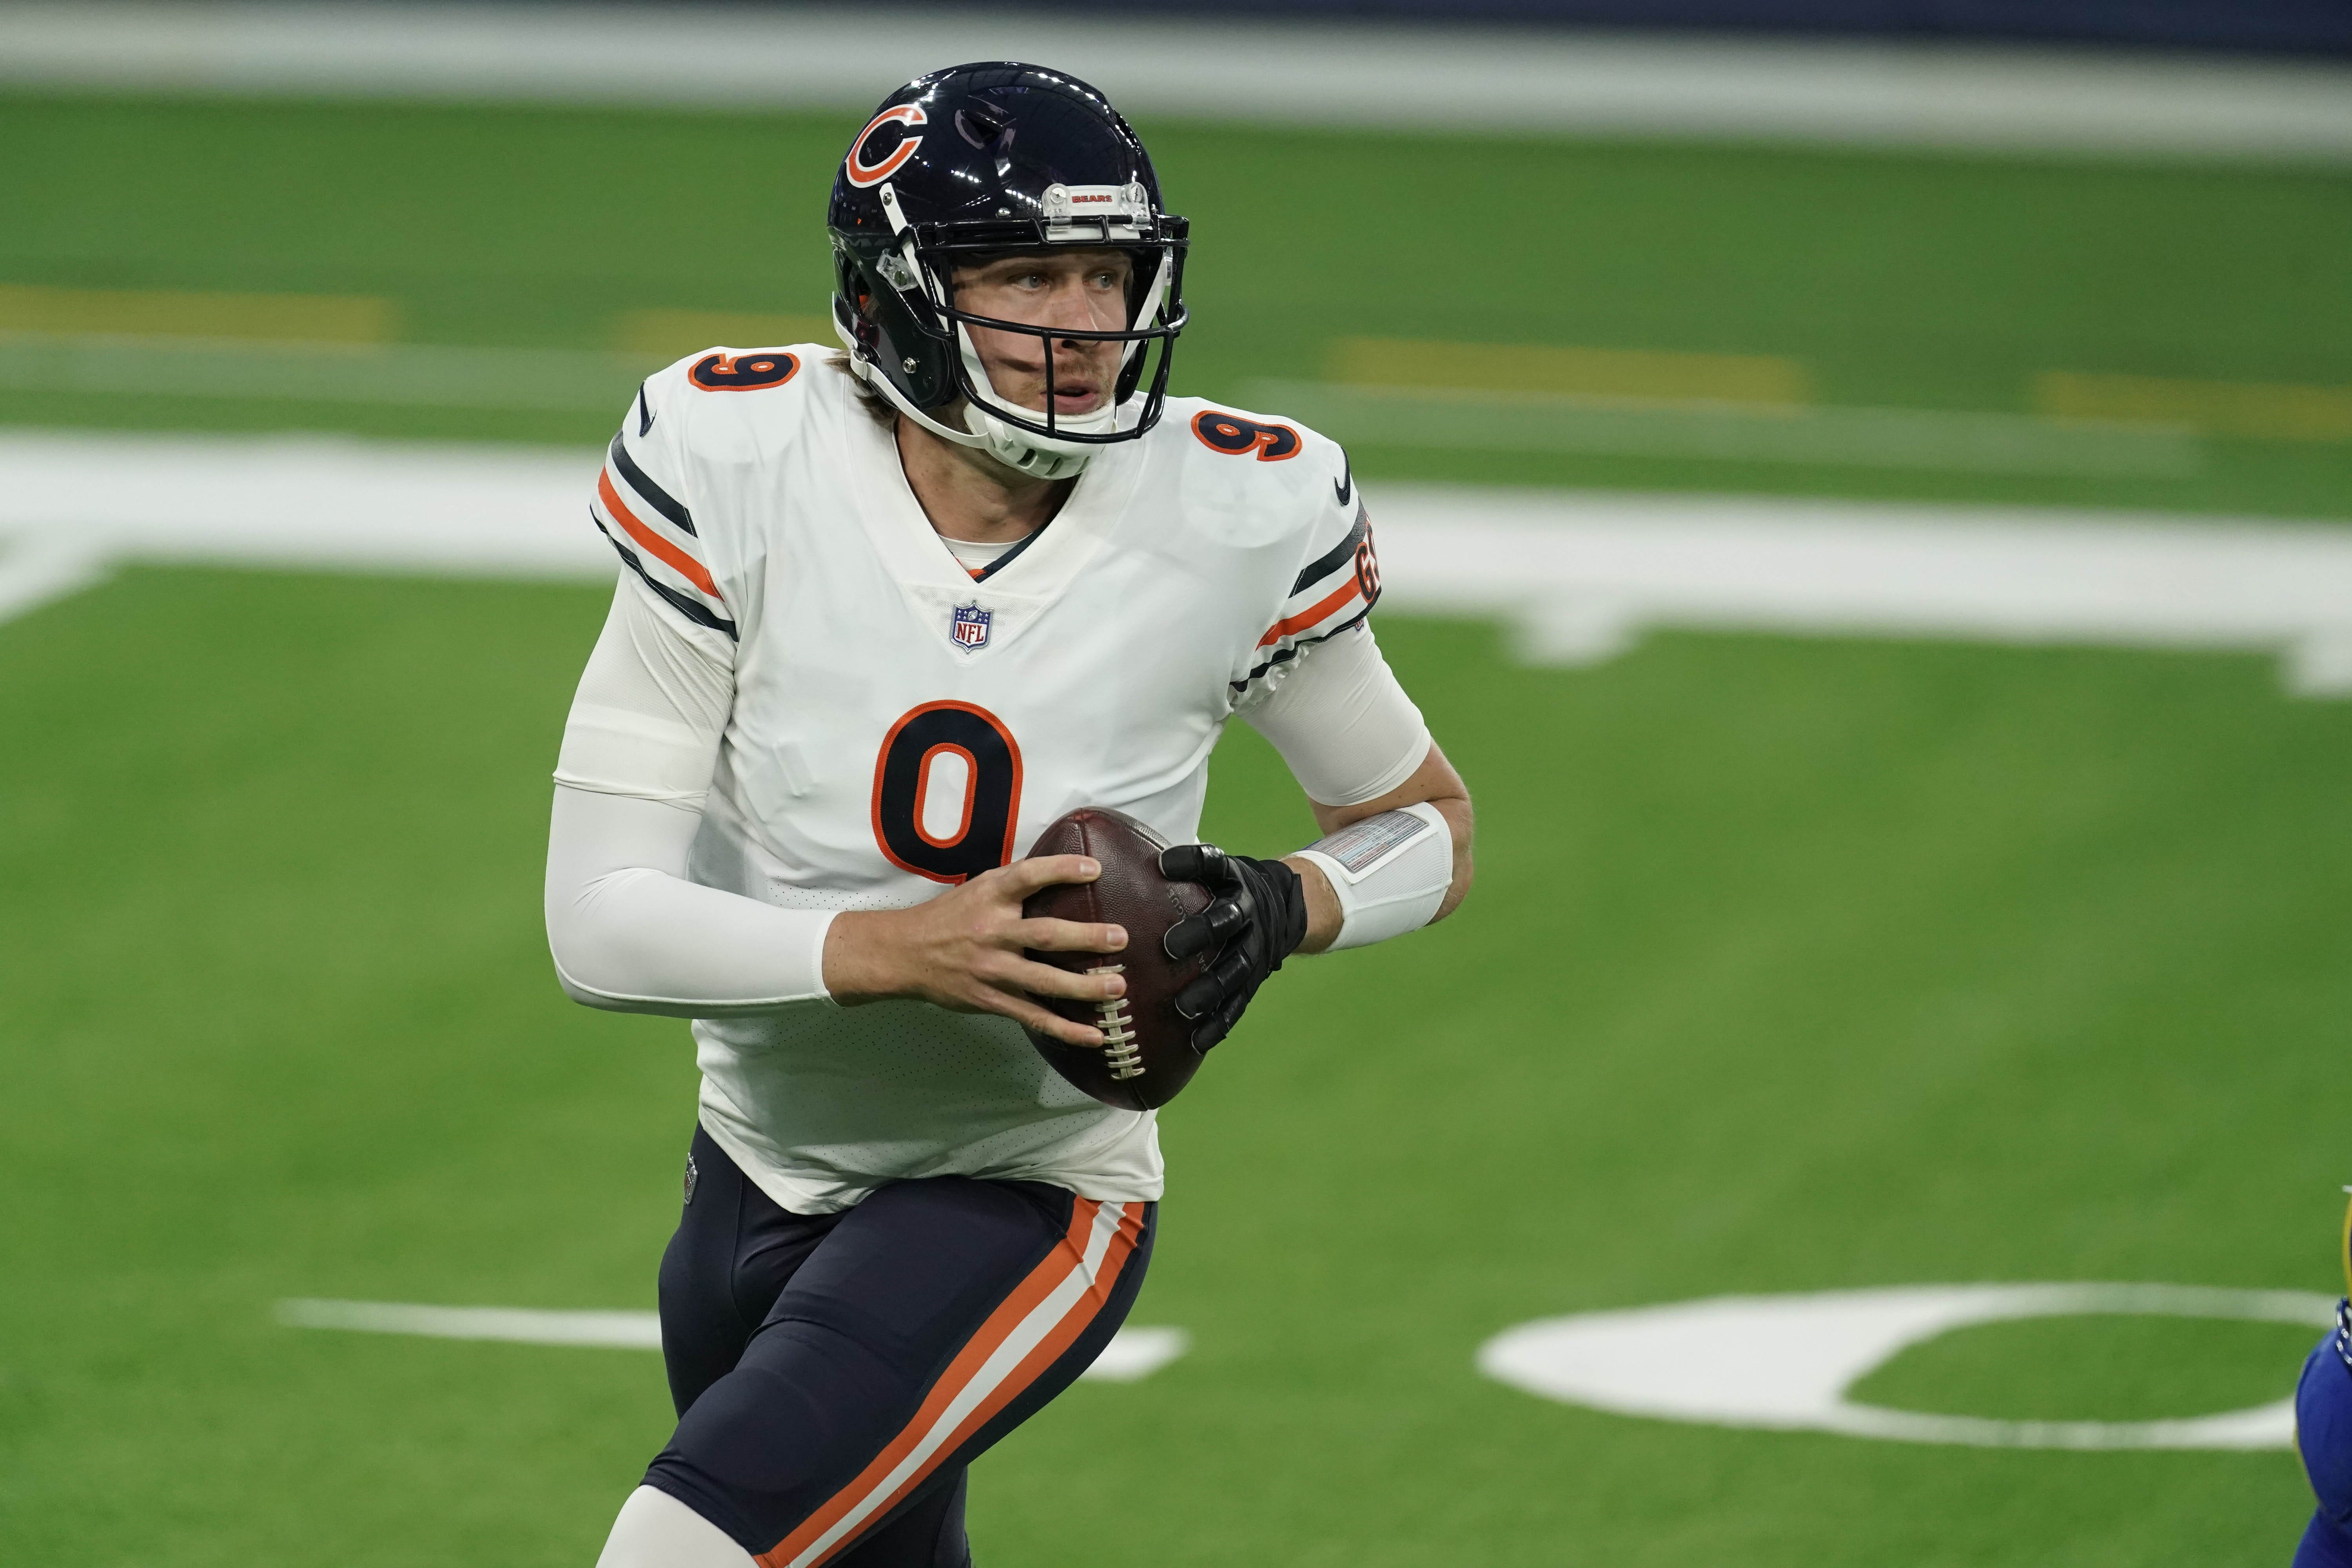 Bears' Nick Foles, Matt Nagy respond to ESPN analyst Brian Griese's comments during 'Monday Night Football'